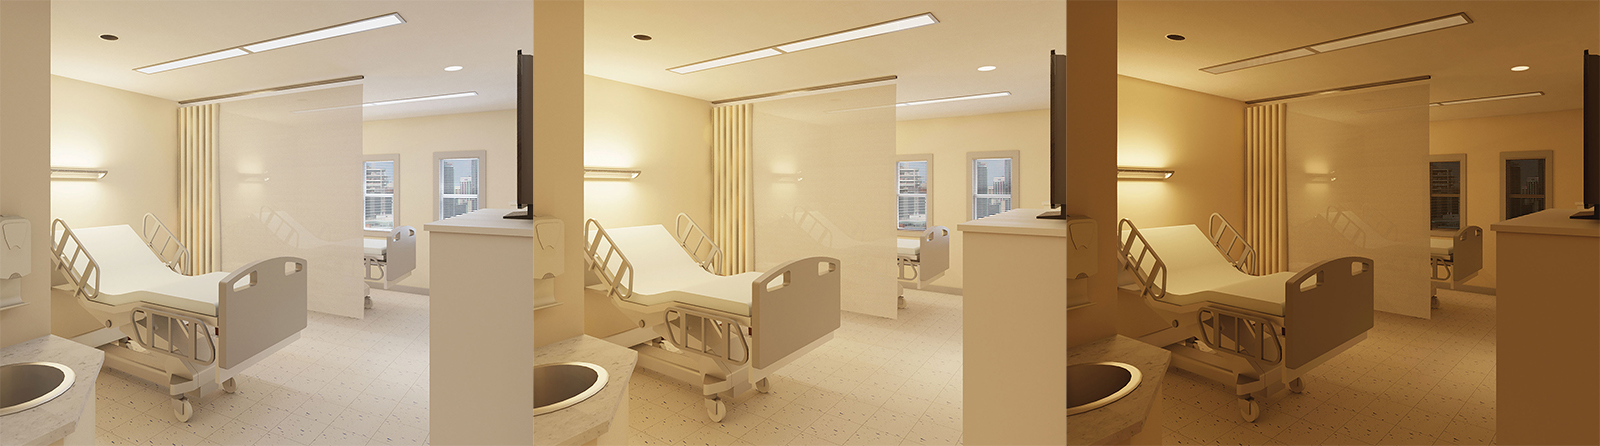 Patient room illuminated for optimal circadian entrainment in the morning (left), afternoon (middle) and evening (right)